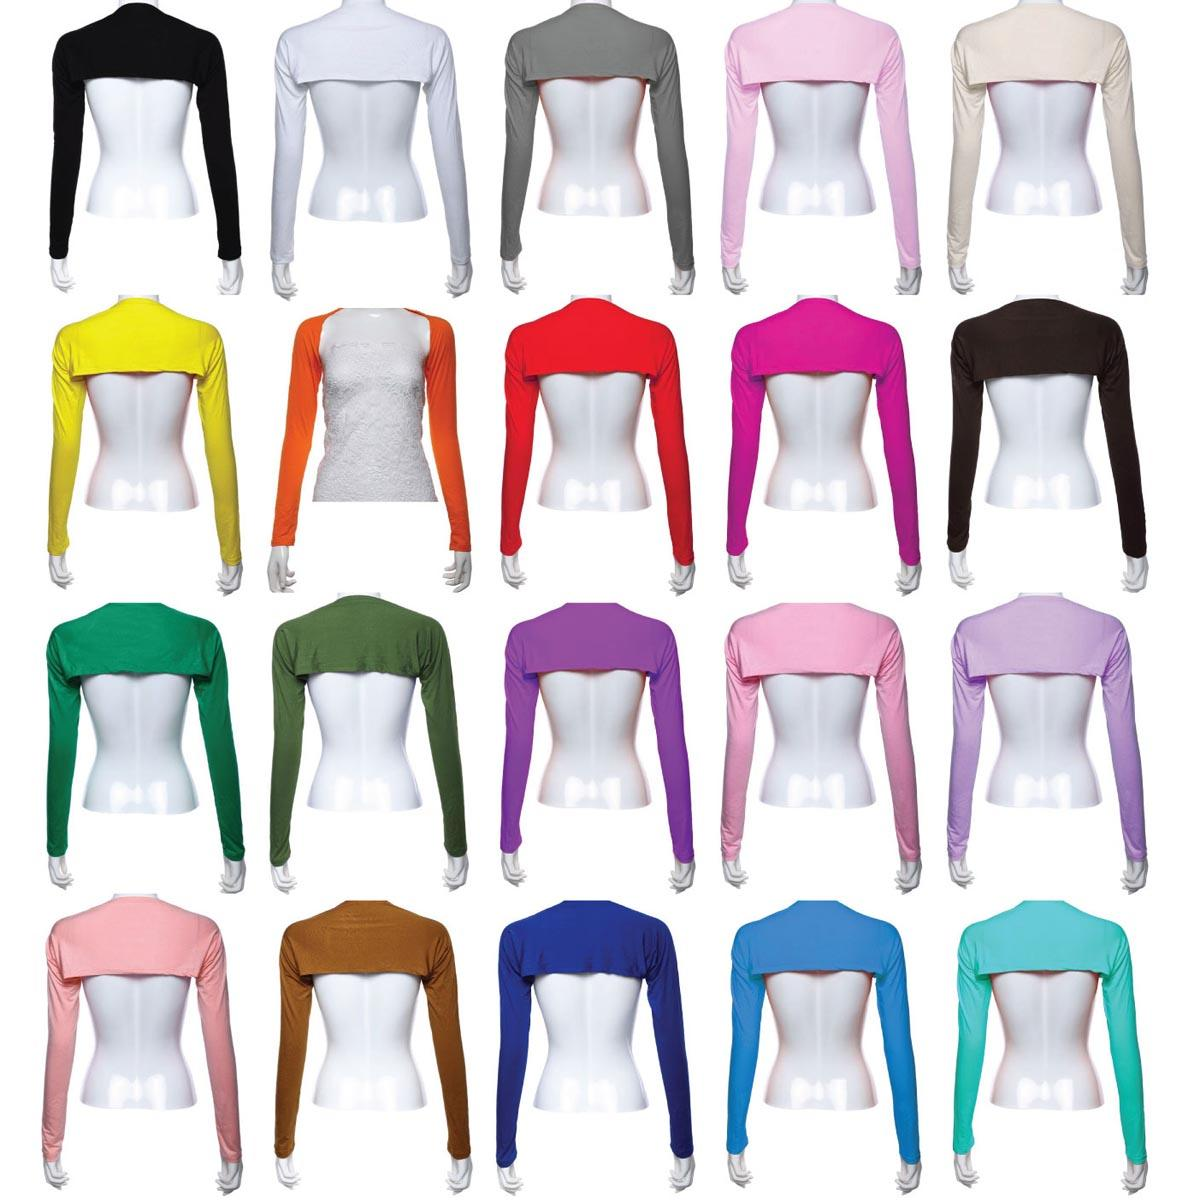 20 Colors Muslim Women Long Sleeve Shawl Arm Cover Bolero/Shrug/Wrap Sun Protection Sleeve Stretch Cover Sleeve Solid Color New